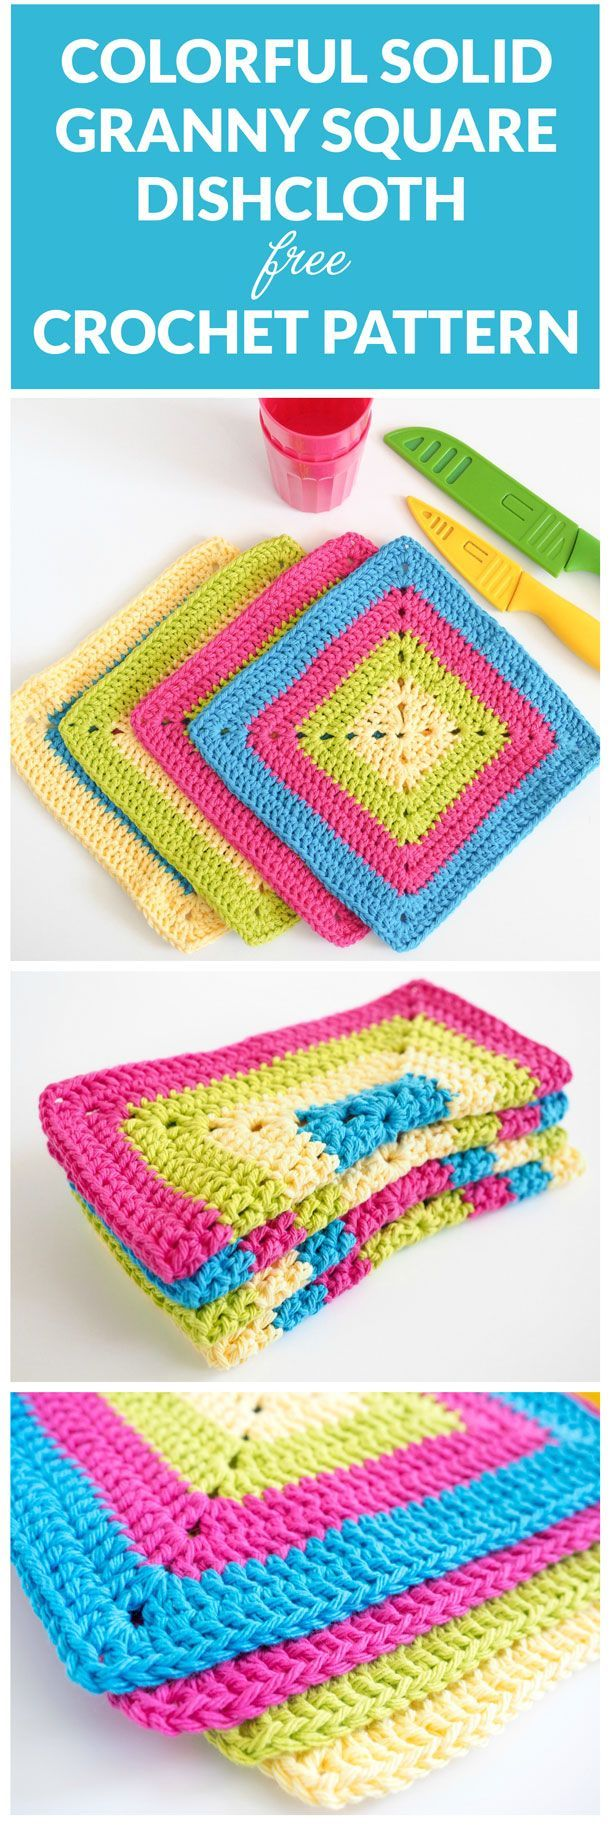 Free Colorful Solid Granny Square Dishcloth Crochet Pattern includes a video tutorial. A fun, lively and super simple crochet pattern. Click for pattern. #CrochetPatternsGrannySquares